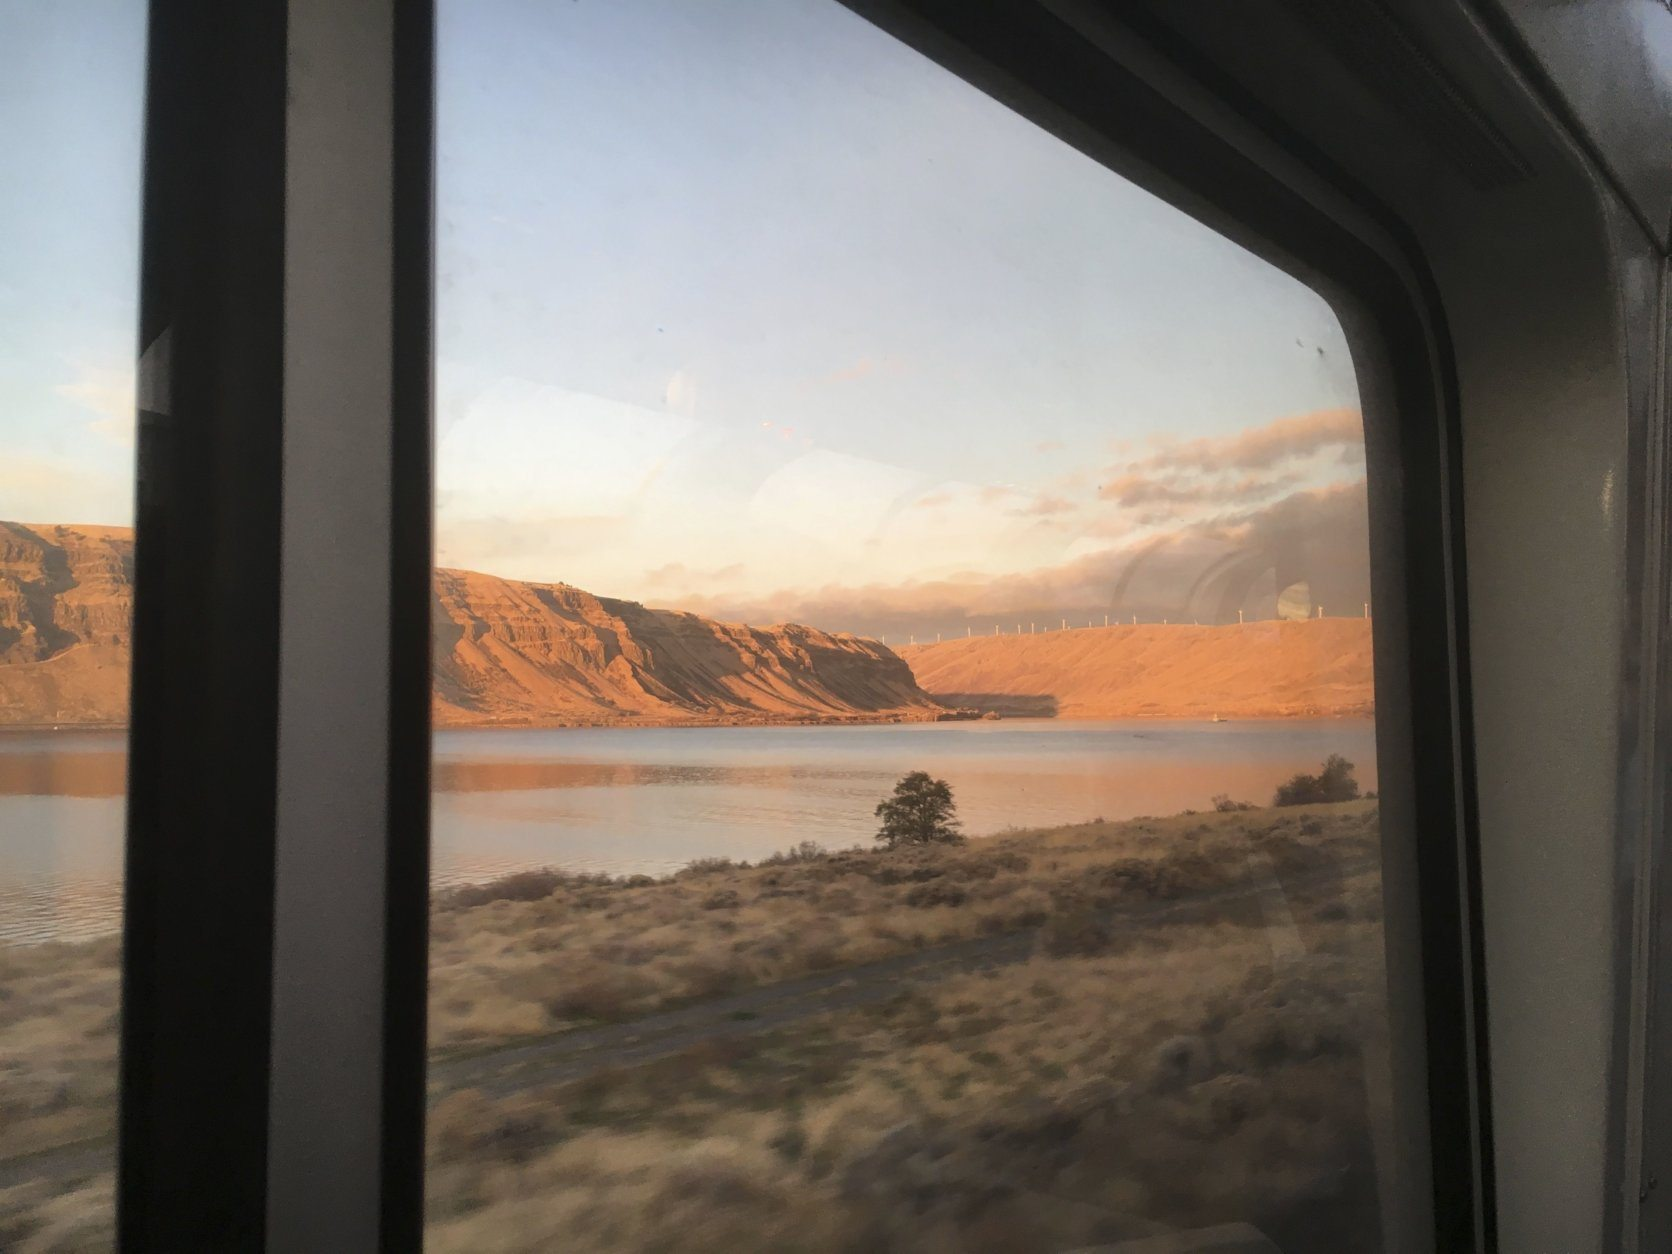 In this Nov. 14, 2017 photo Amtrak's Empire Builder approaches a bend in the Columbia River Gorge. The Empire Builder's section serving Portland, Oregon, travels approximately 55 miles of the gorge, which separates Oregon and Washington. Further east, the train crosses the northern Rockies and the northern Great Plains on its route between Chicago and the Pacific Northwest. (AP Photo/Paul Davenport)